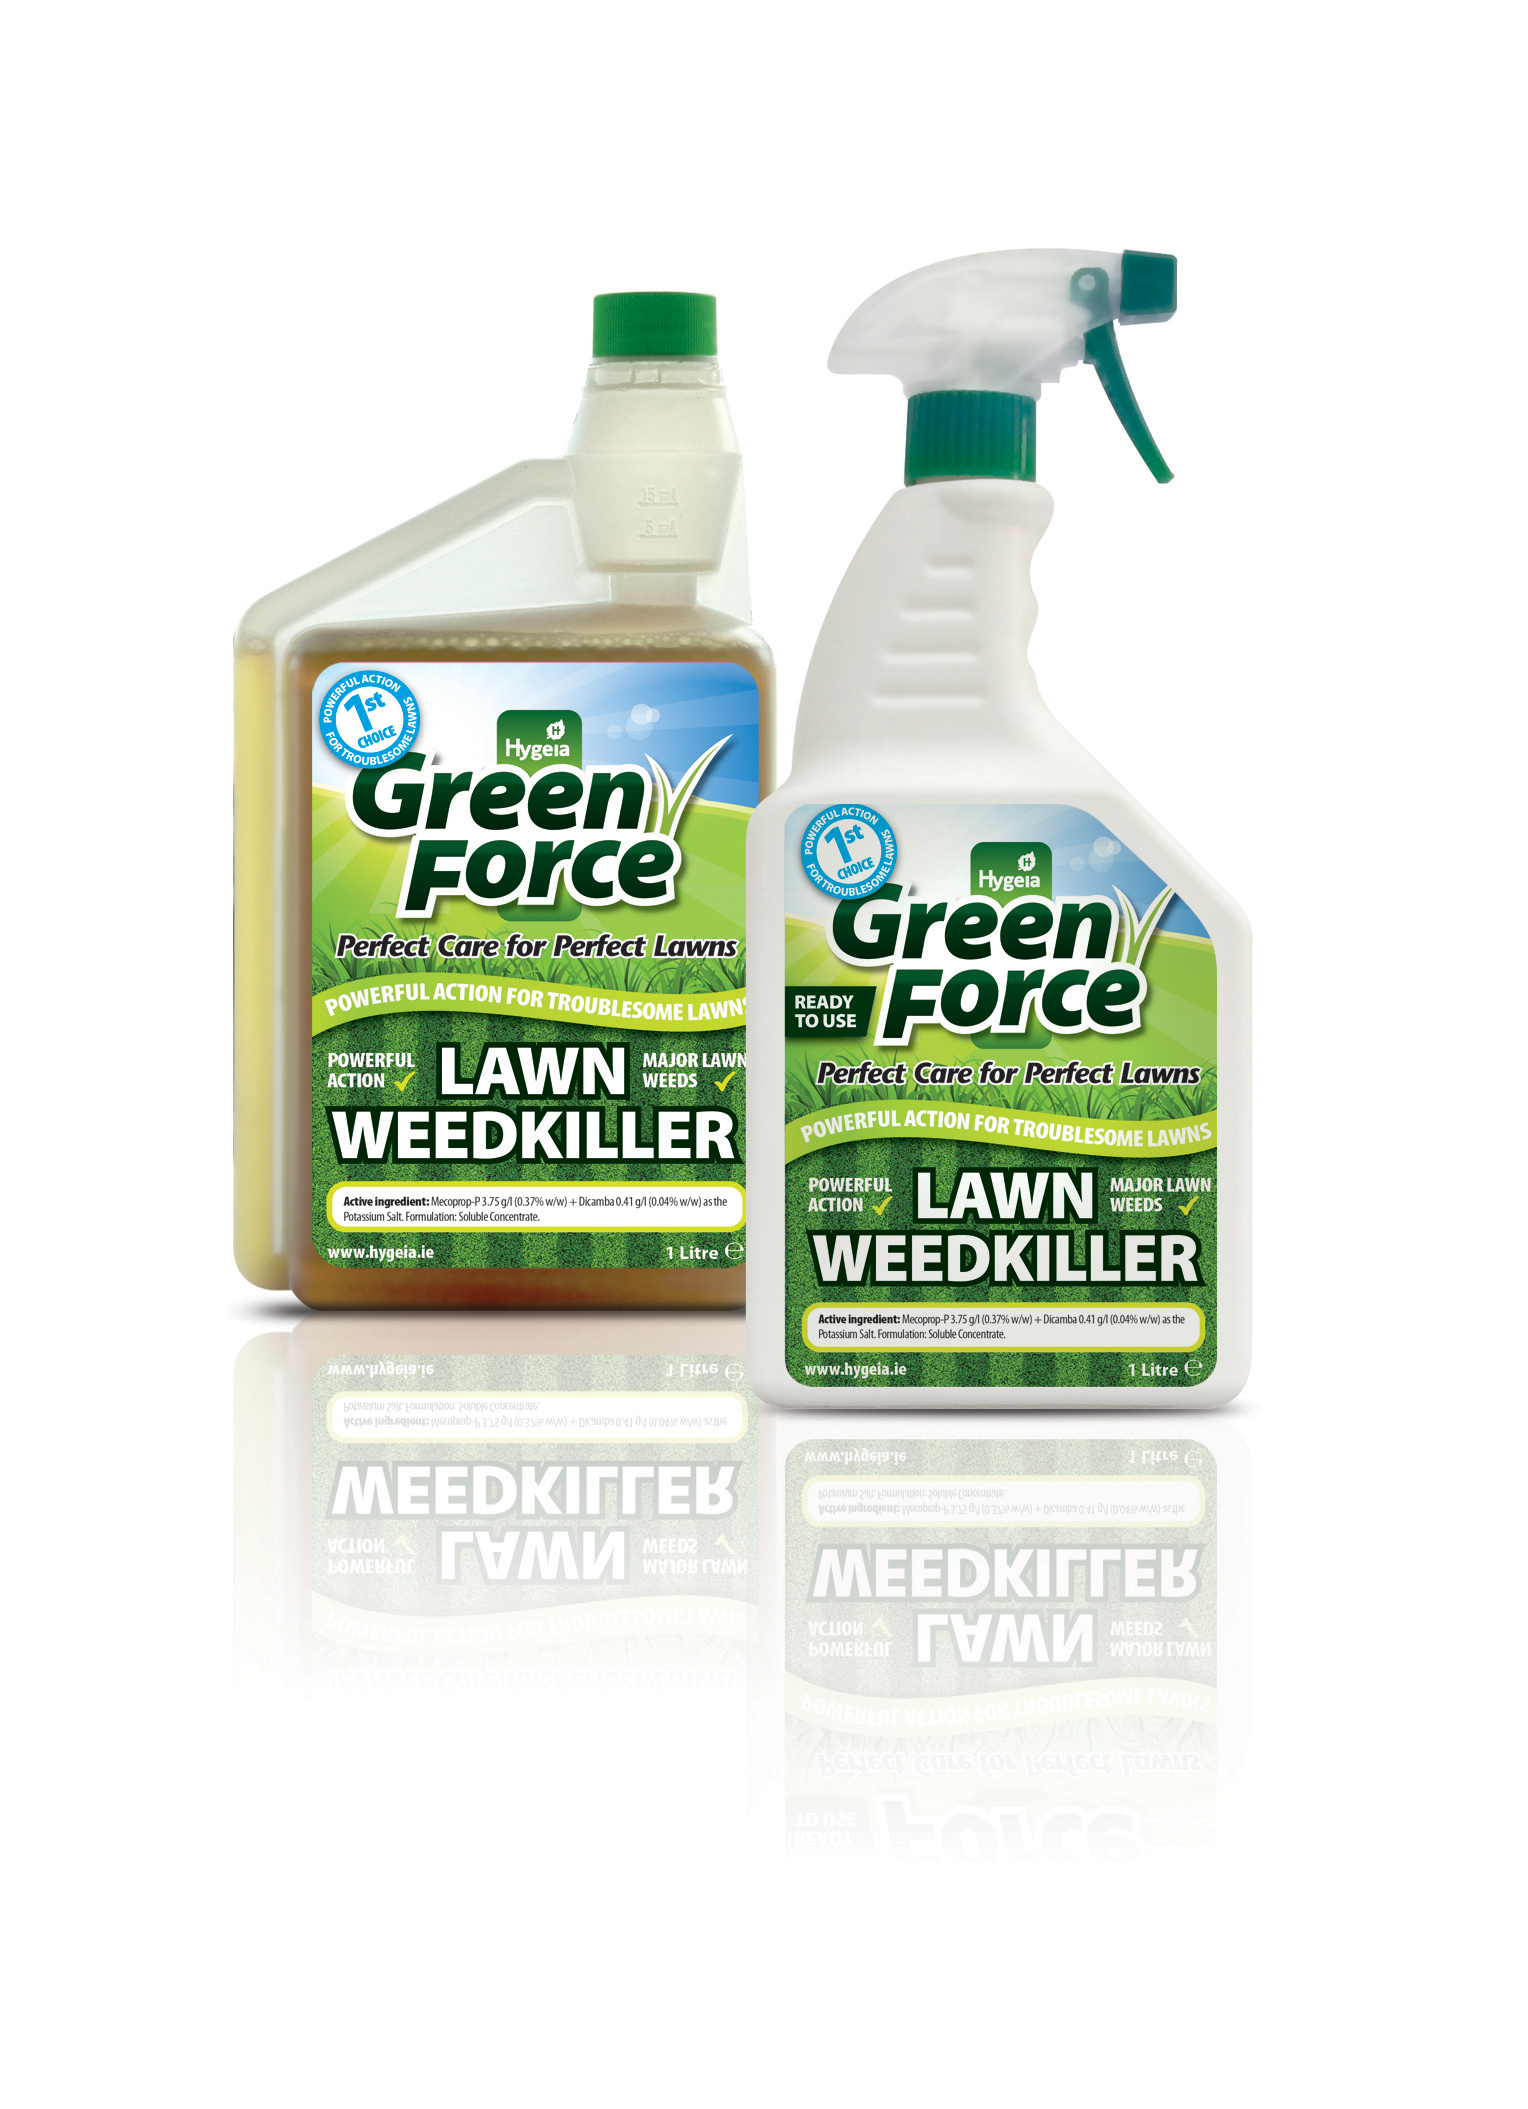 Greenforce Lawn Weedkiller